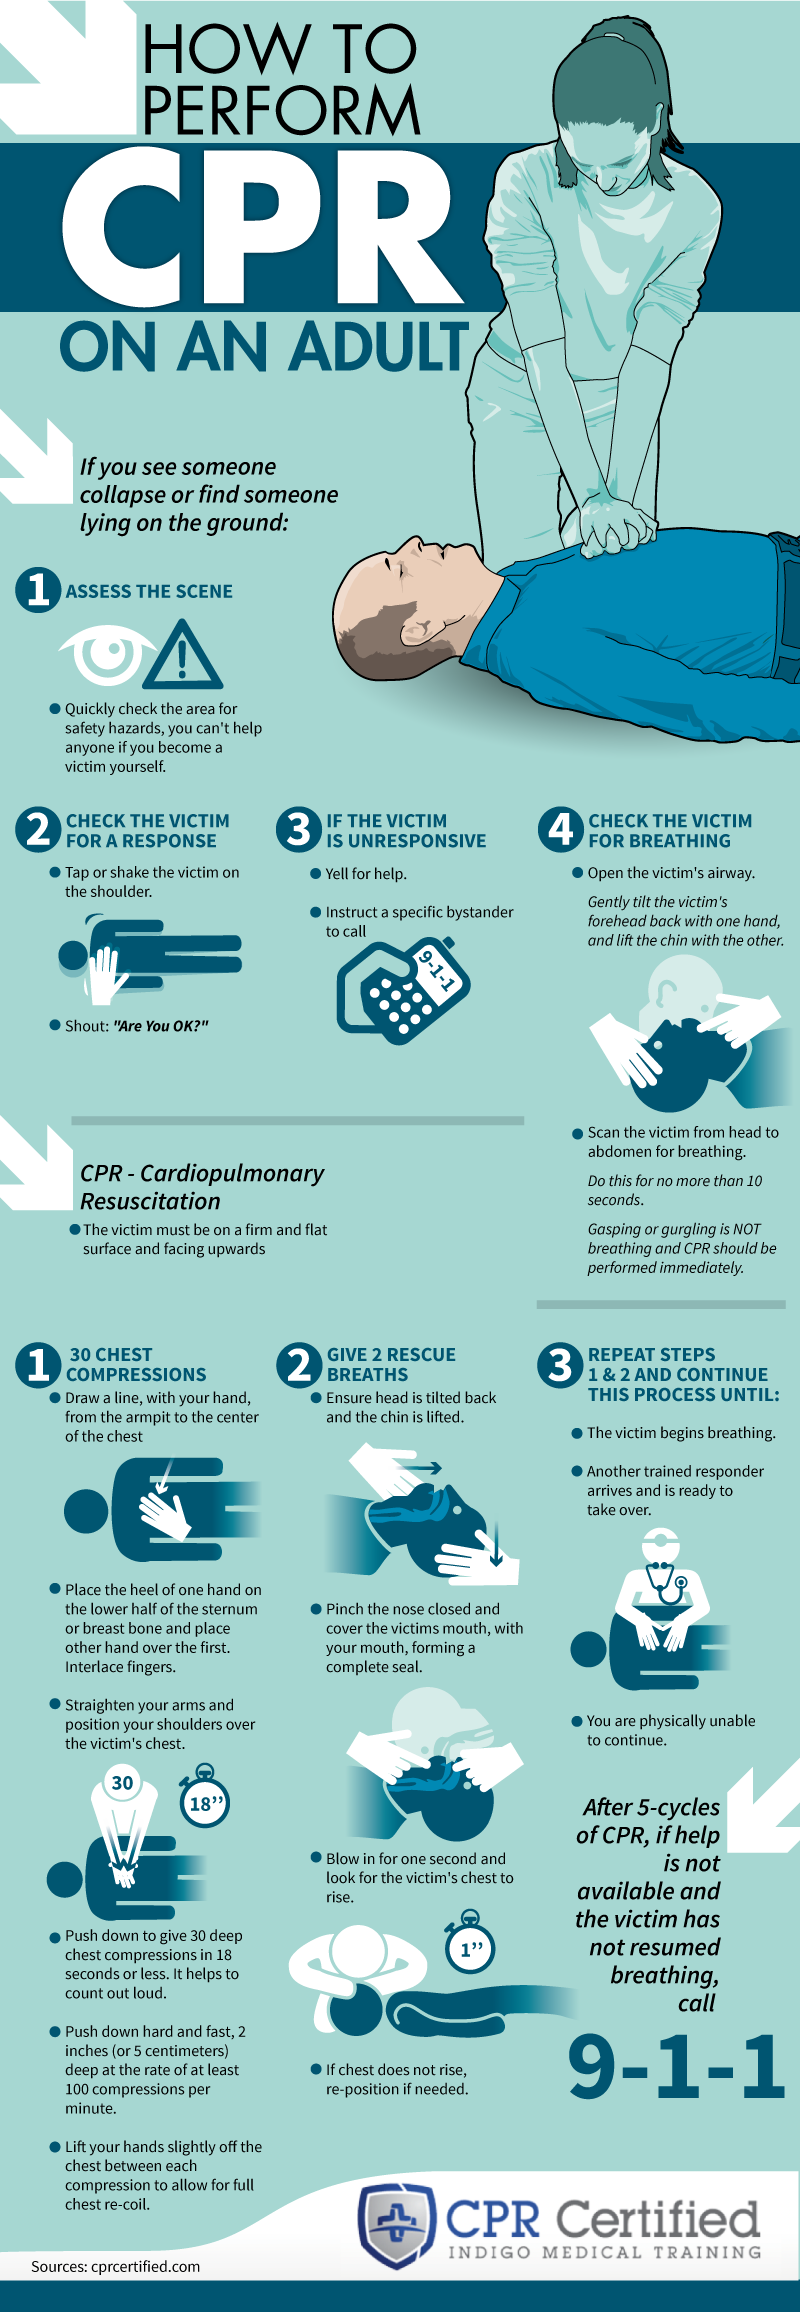 How to perform cpr on an adult infographic cardiopulmonary resuscitation should only be performed by a trained first responder or an individual with a cpr certification to get certified in cpr xflitez Images